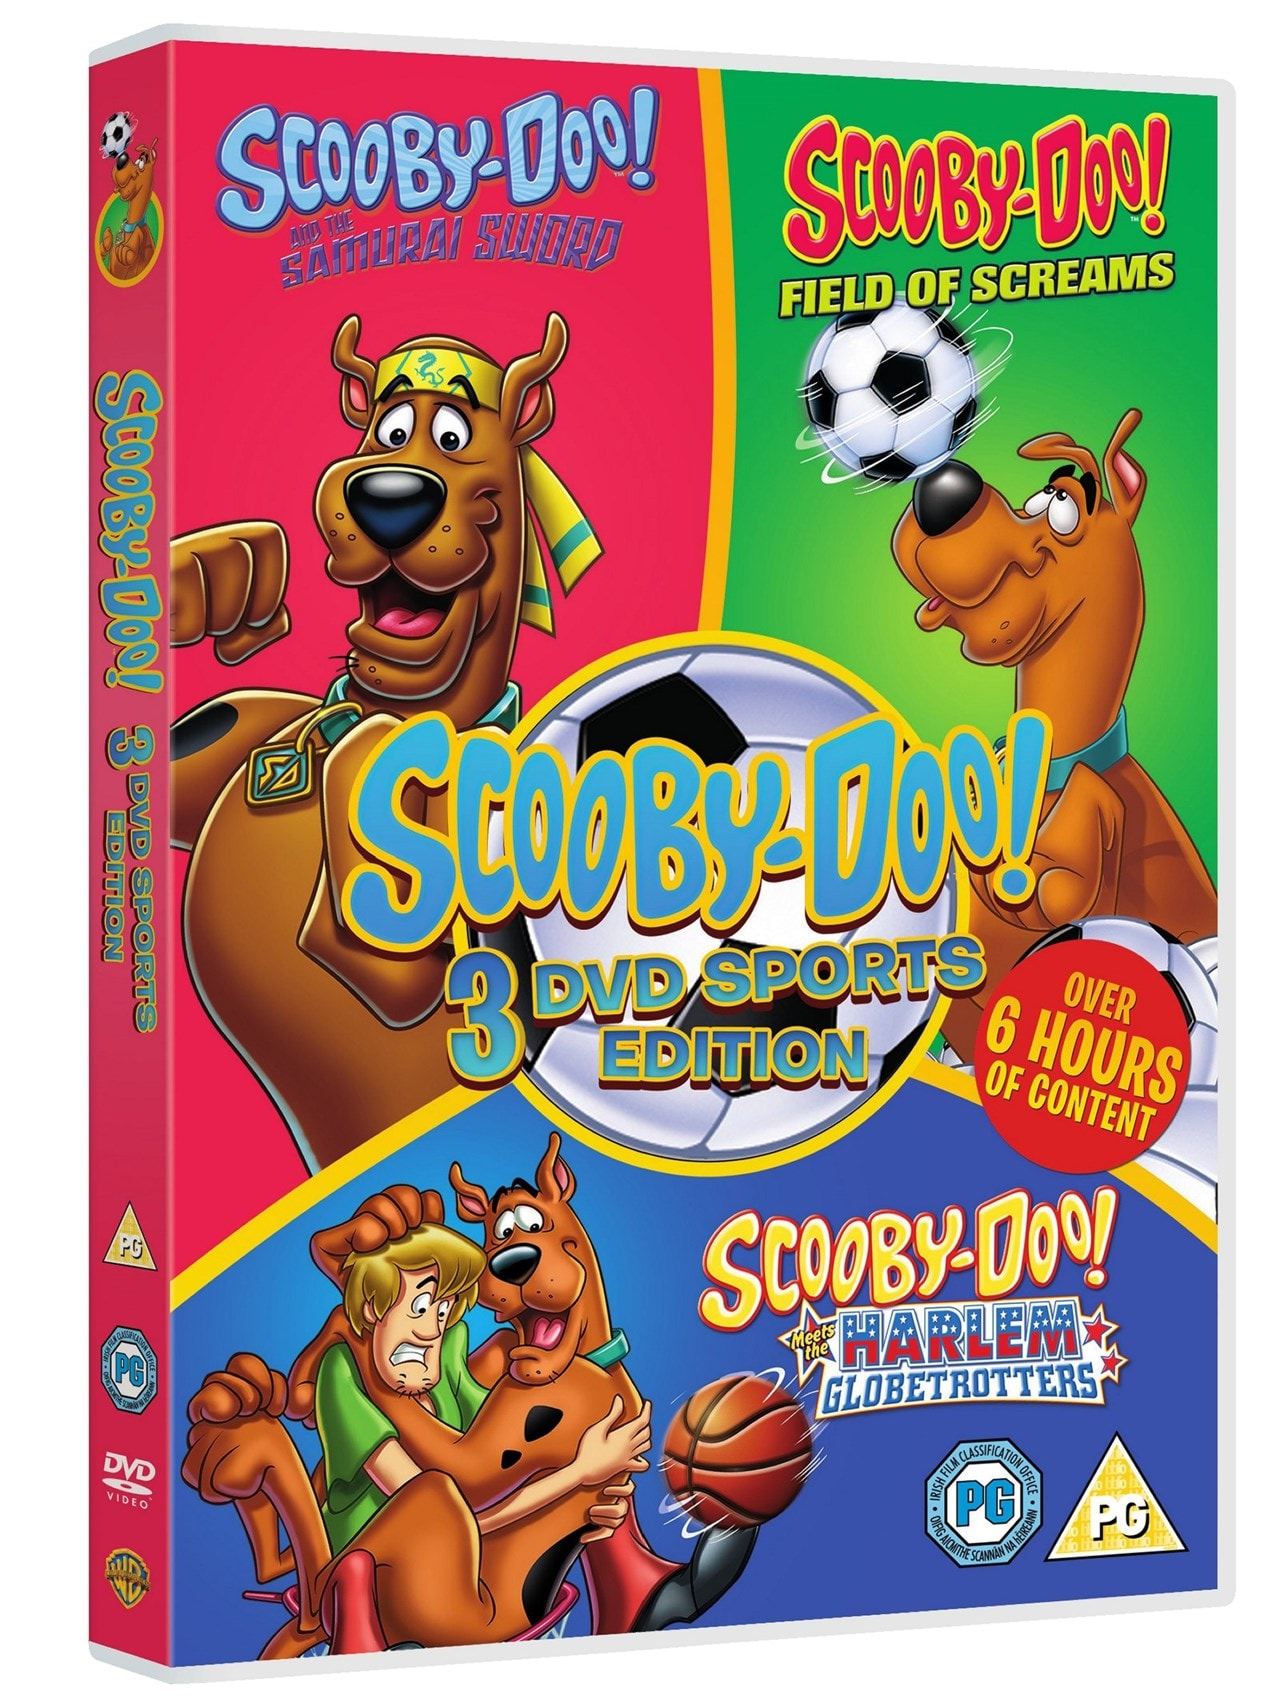 Scooby-Doo: Sports Edition - 2